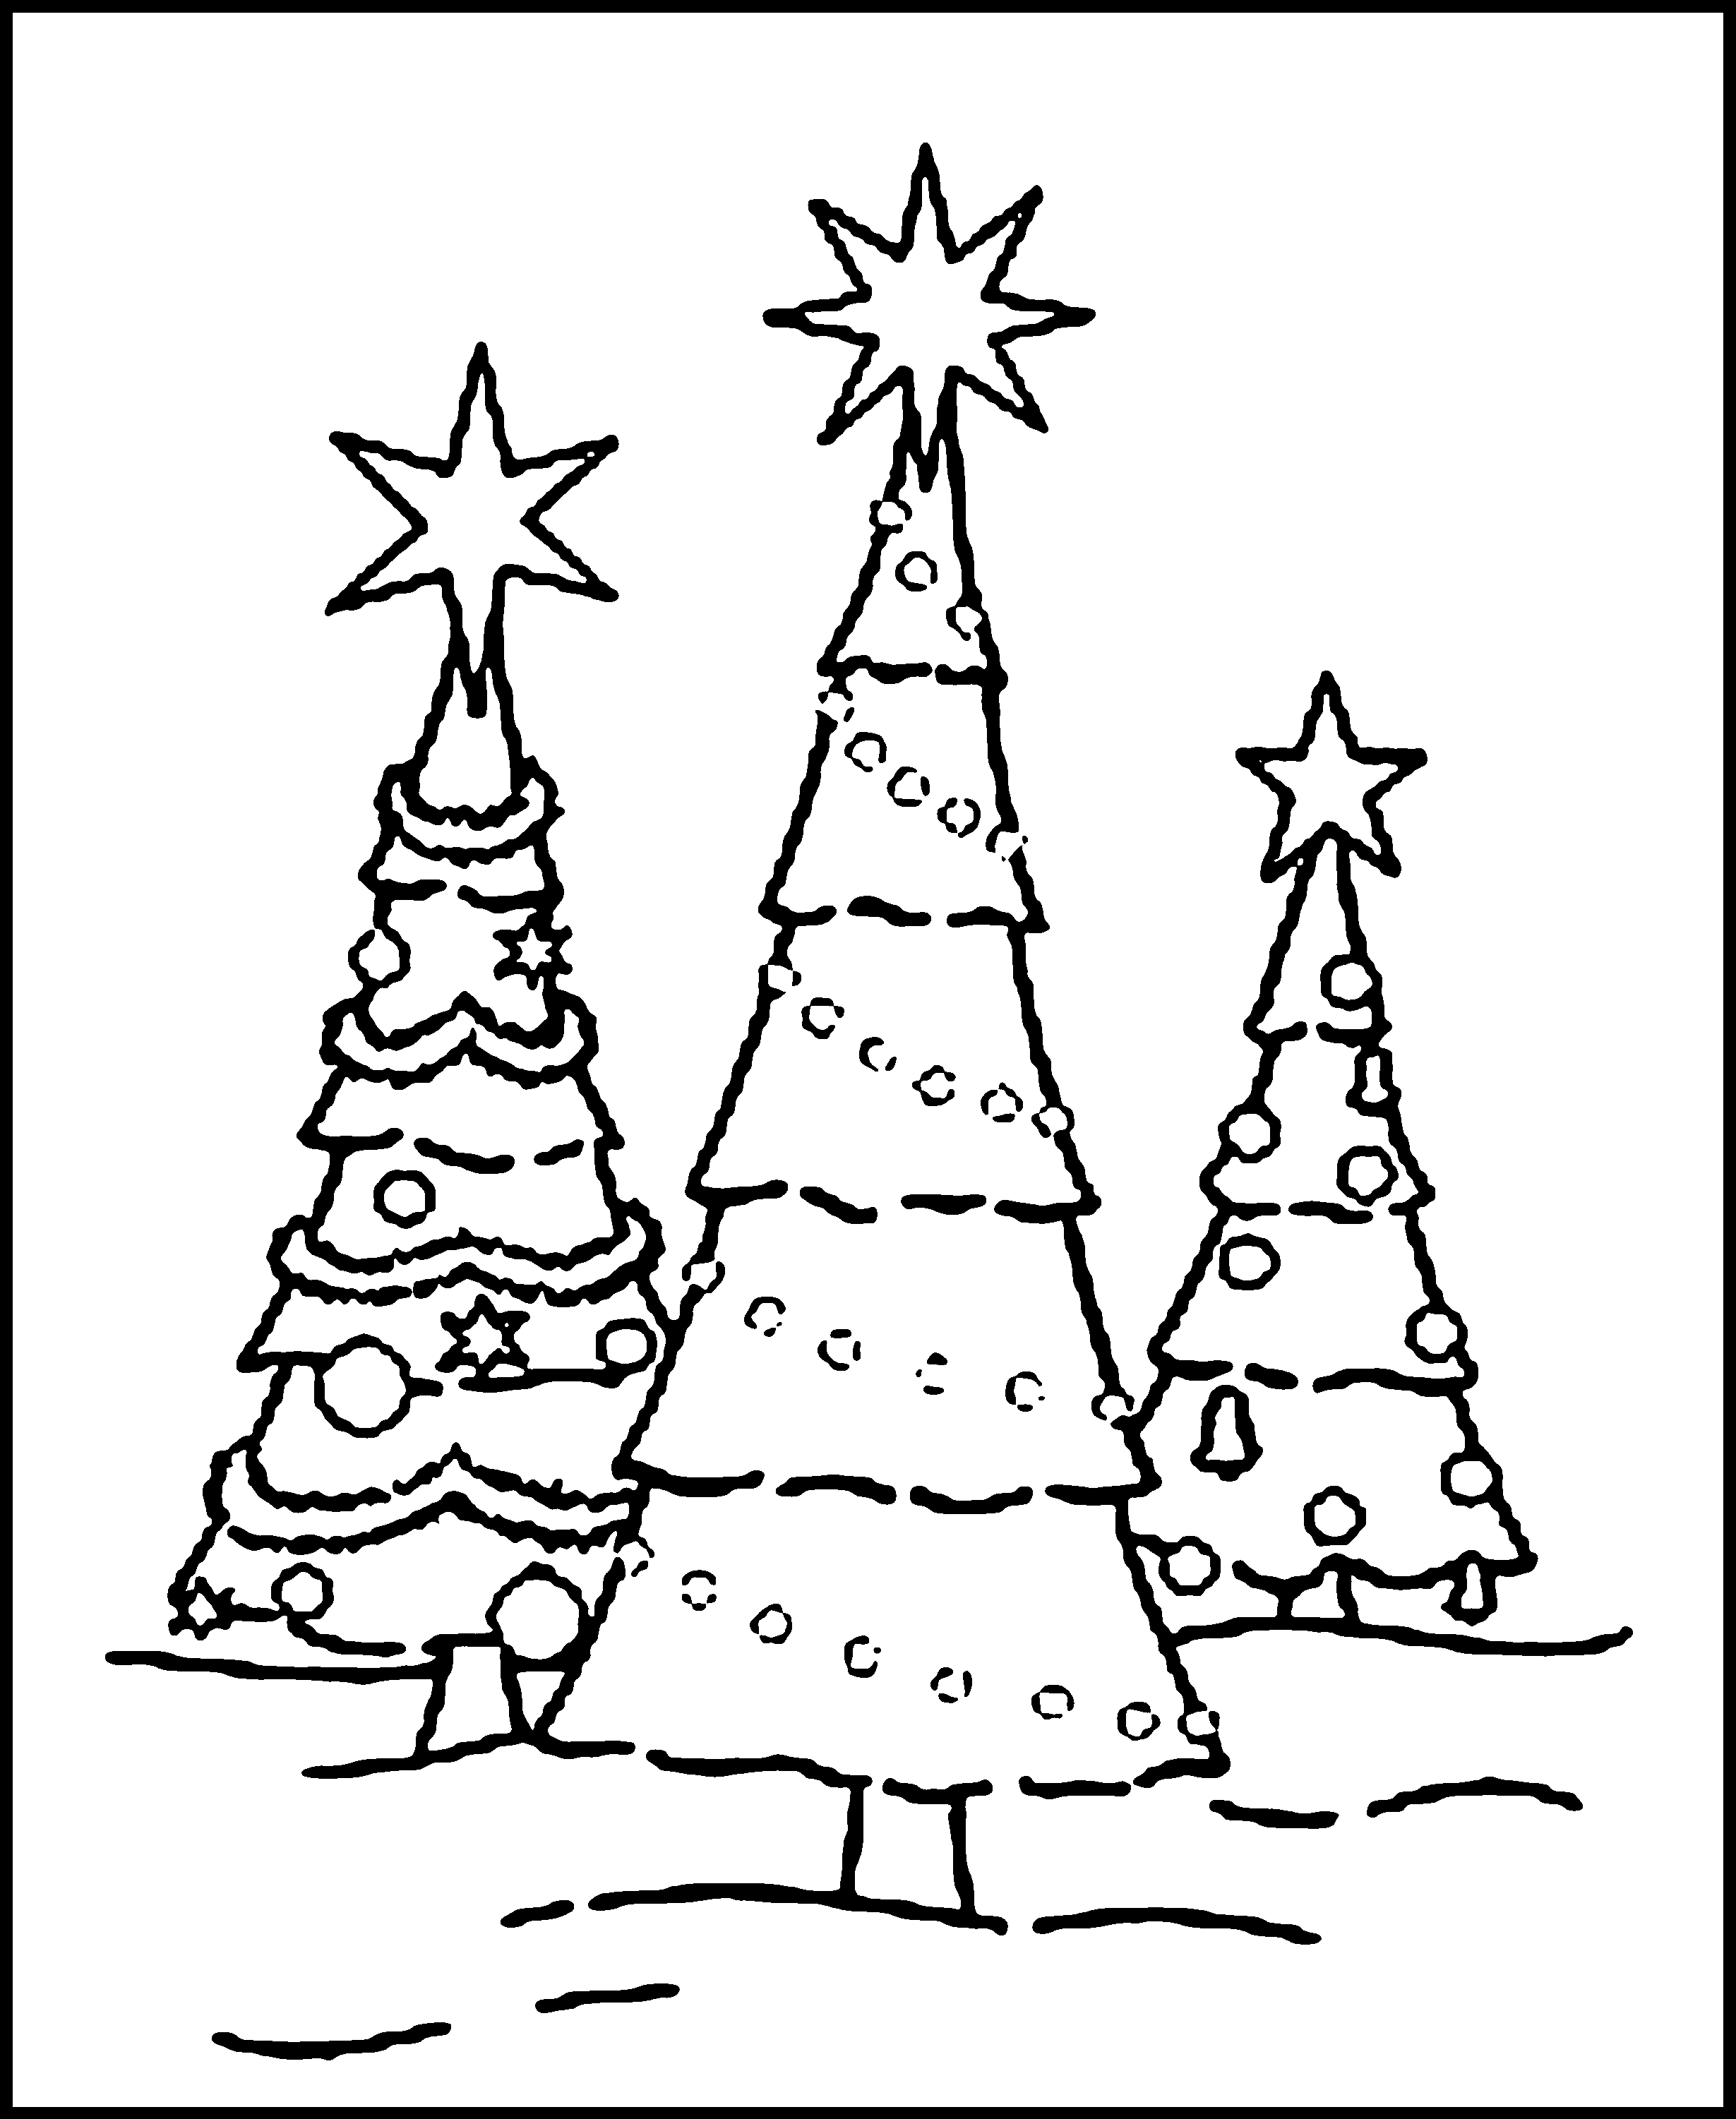 colouring pages christmas free free printable christmas tree coloring pages for kids colouring free pages christmas